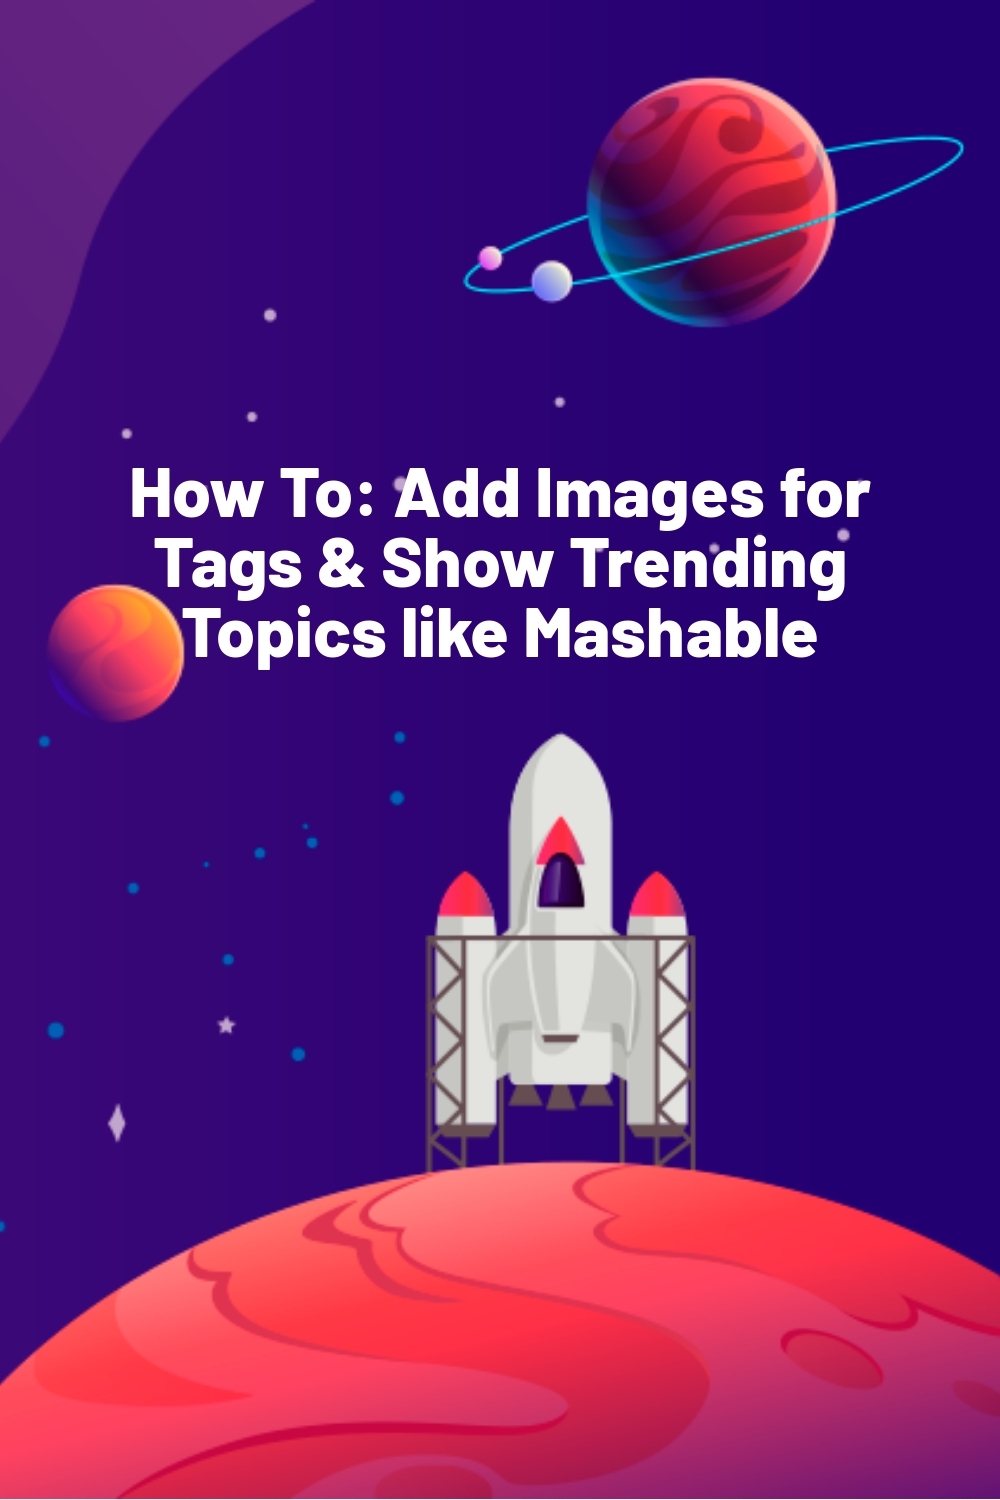 How To: Add Images for Tags & Show Trending Topics like Mashable